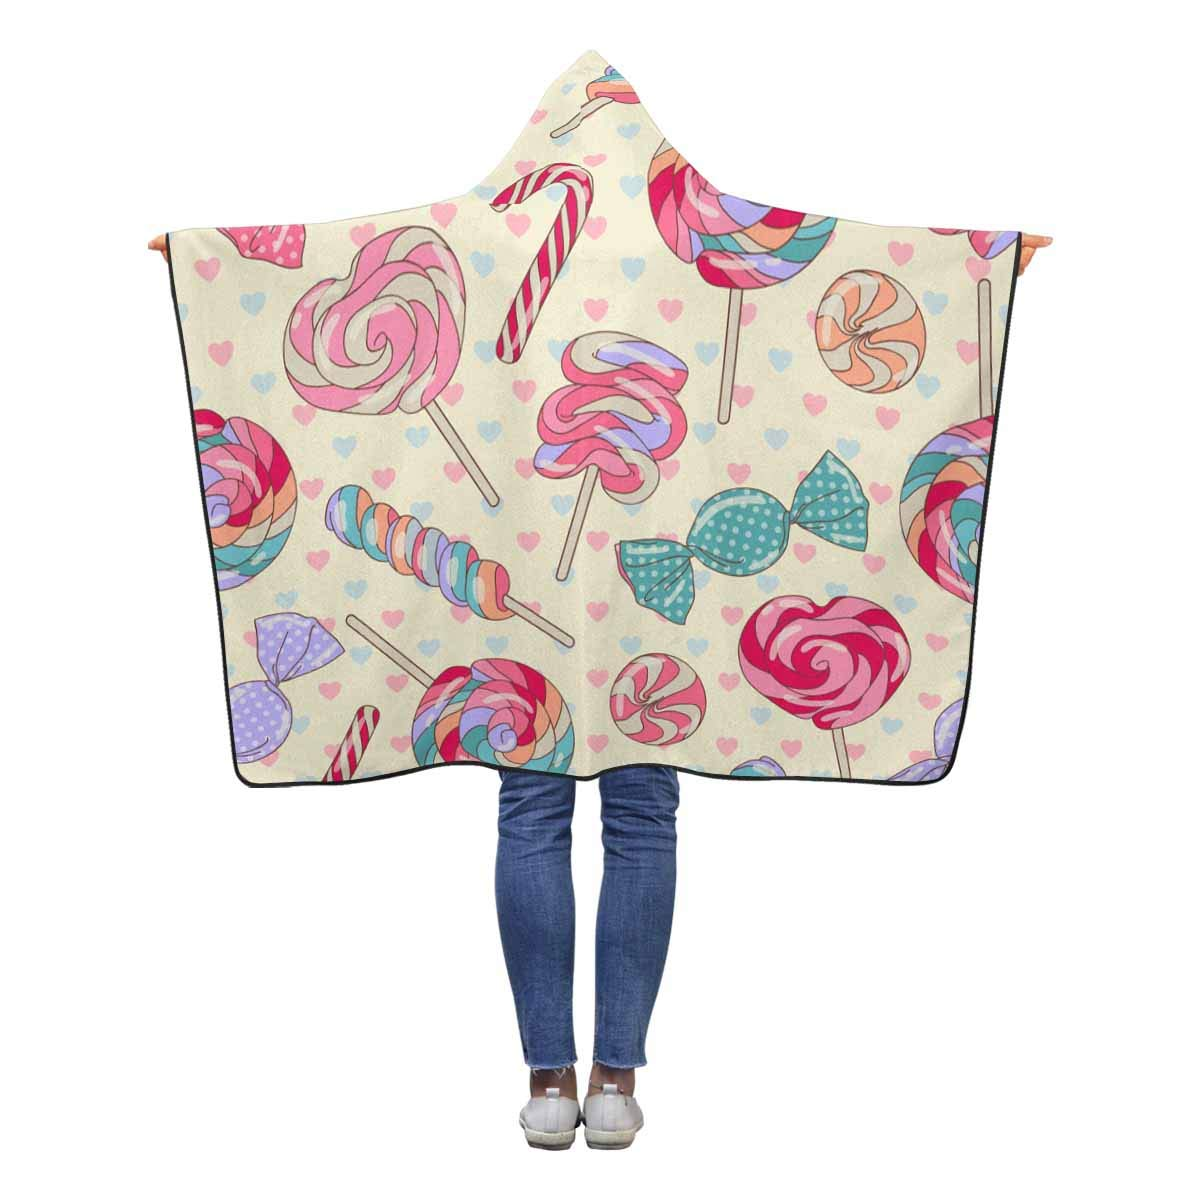 InterestPrint Colorful Sweet Lollipop Candy Throw Blanket 50 x 40 inches Soft Lightweight Blankets with Hood by InterestPrint